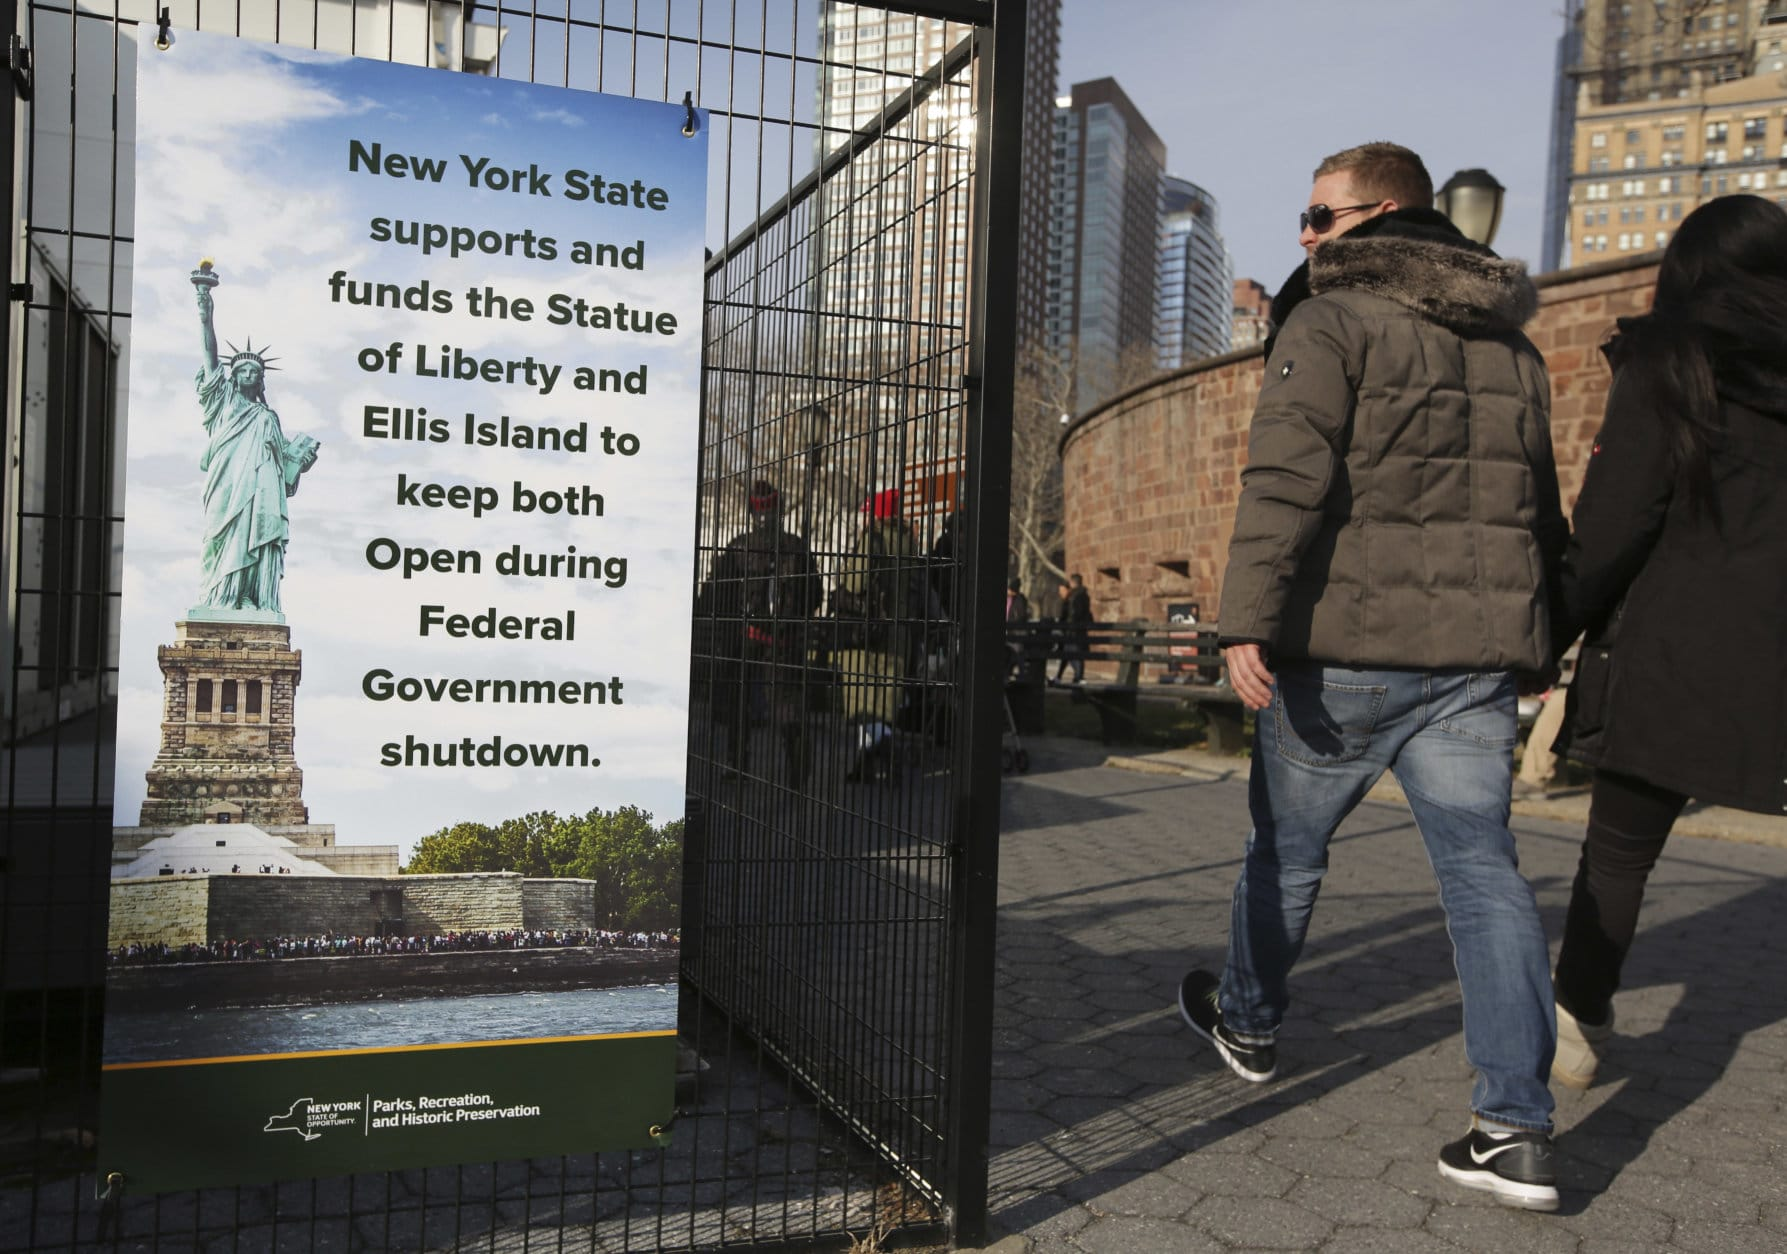 Tourists walk past a sign near the embarkation point for the Statue of Liberty in New York, Thursday, Dec. 27, 2018. The Statue of Liberty and Ellis Island will remain open despite the ongoing partial government shutdown, even as some national parks and monuments close down, according to New York Gov. Andrew Cuomo. (AP Photo/Seth Wenig)